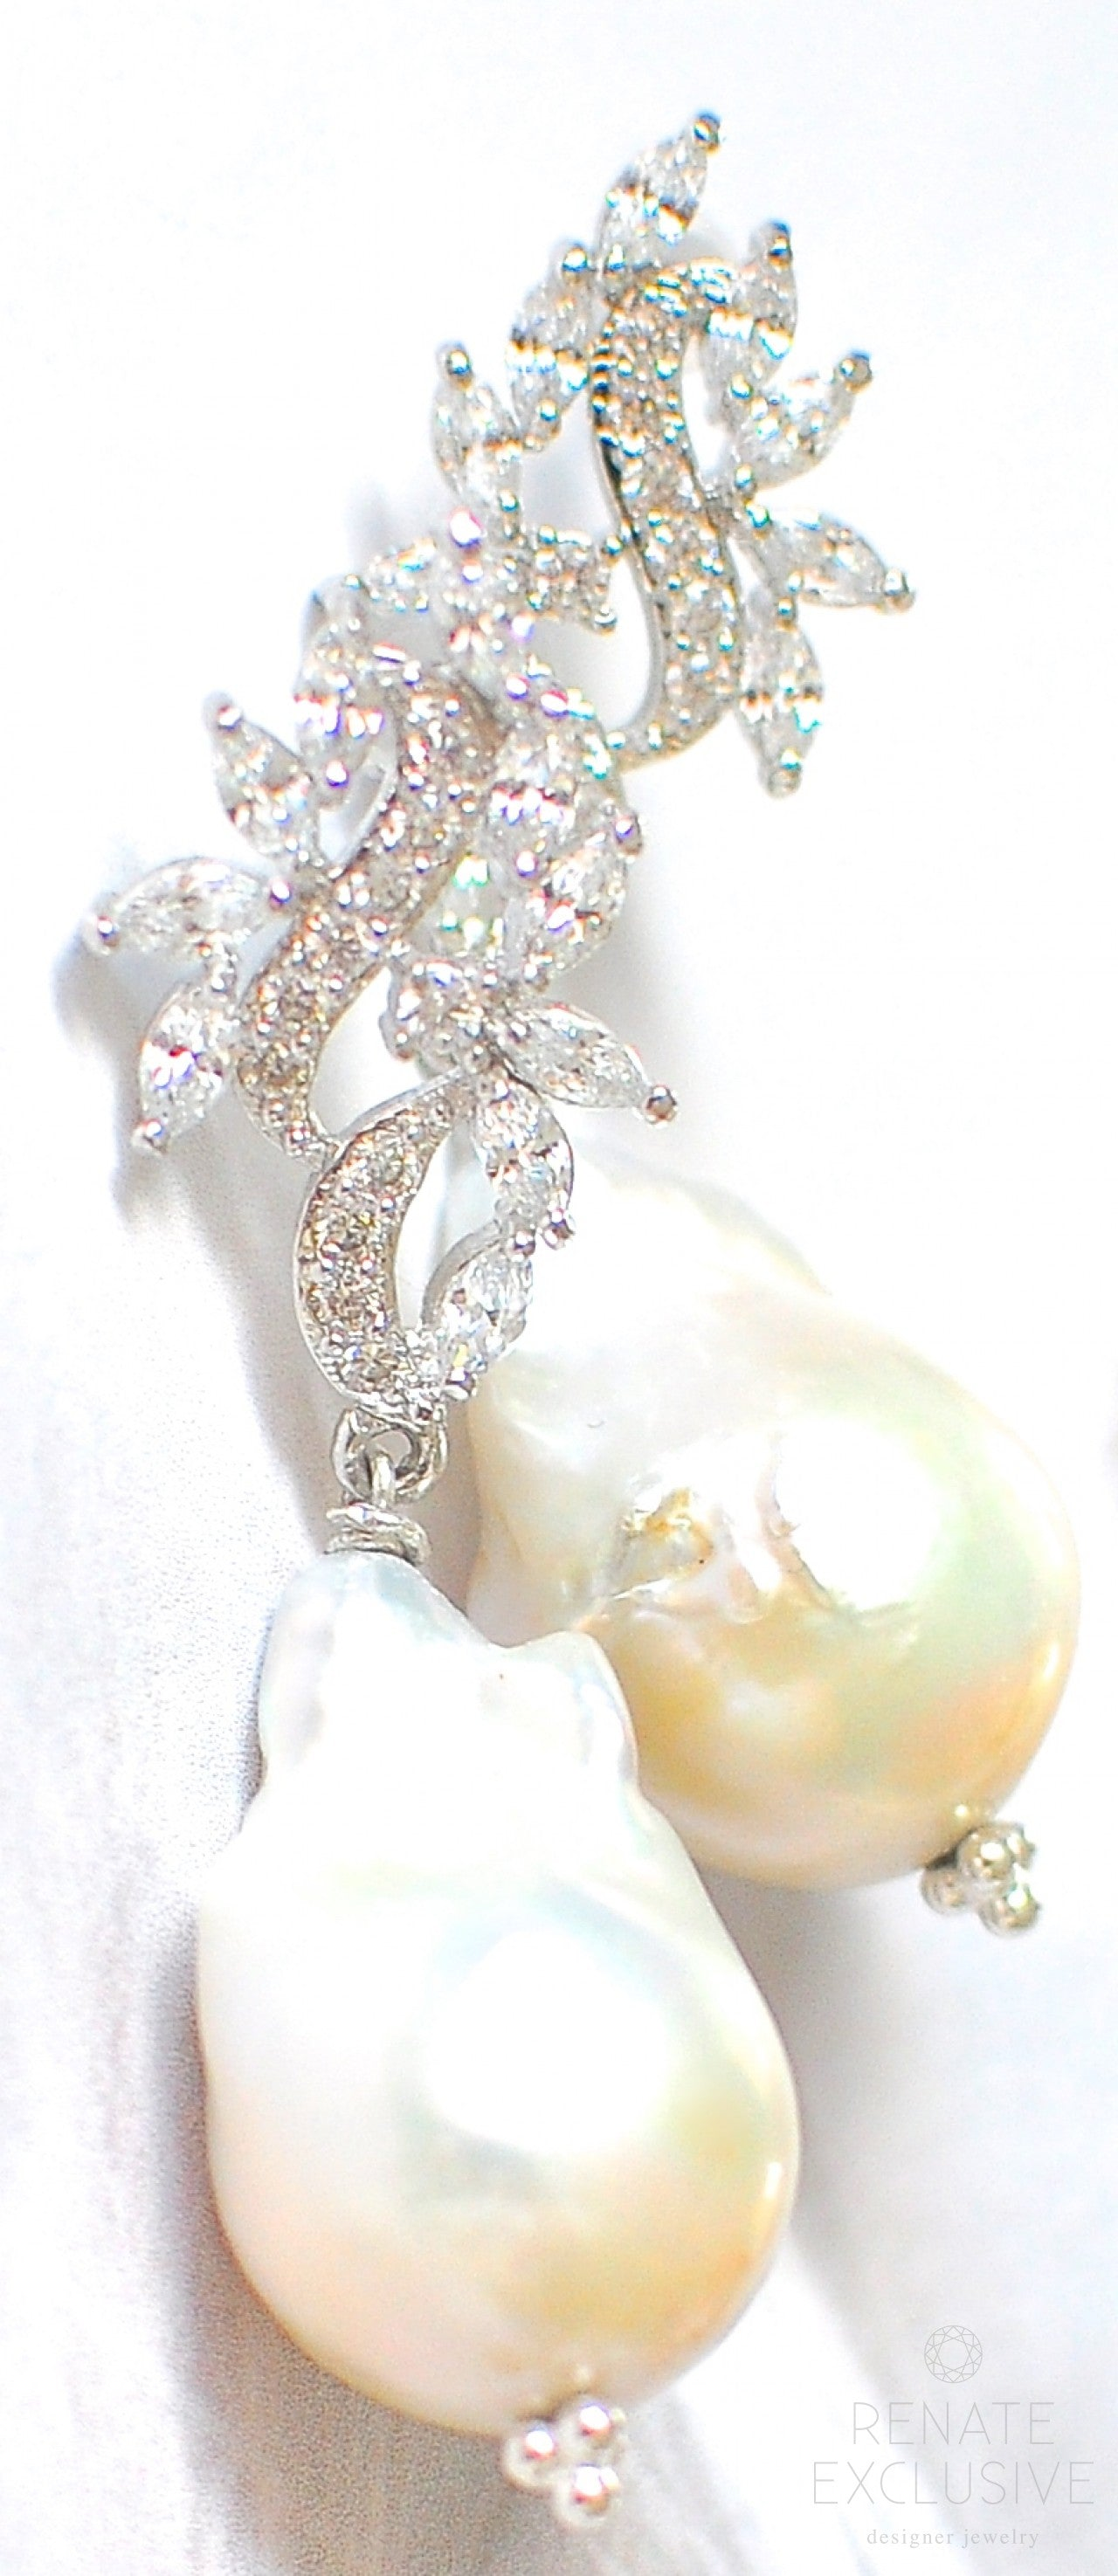 and giant earrings spade gold york jewel shopbop jewlery wild bauble kate pearl run new stud pin